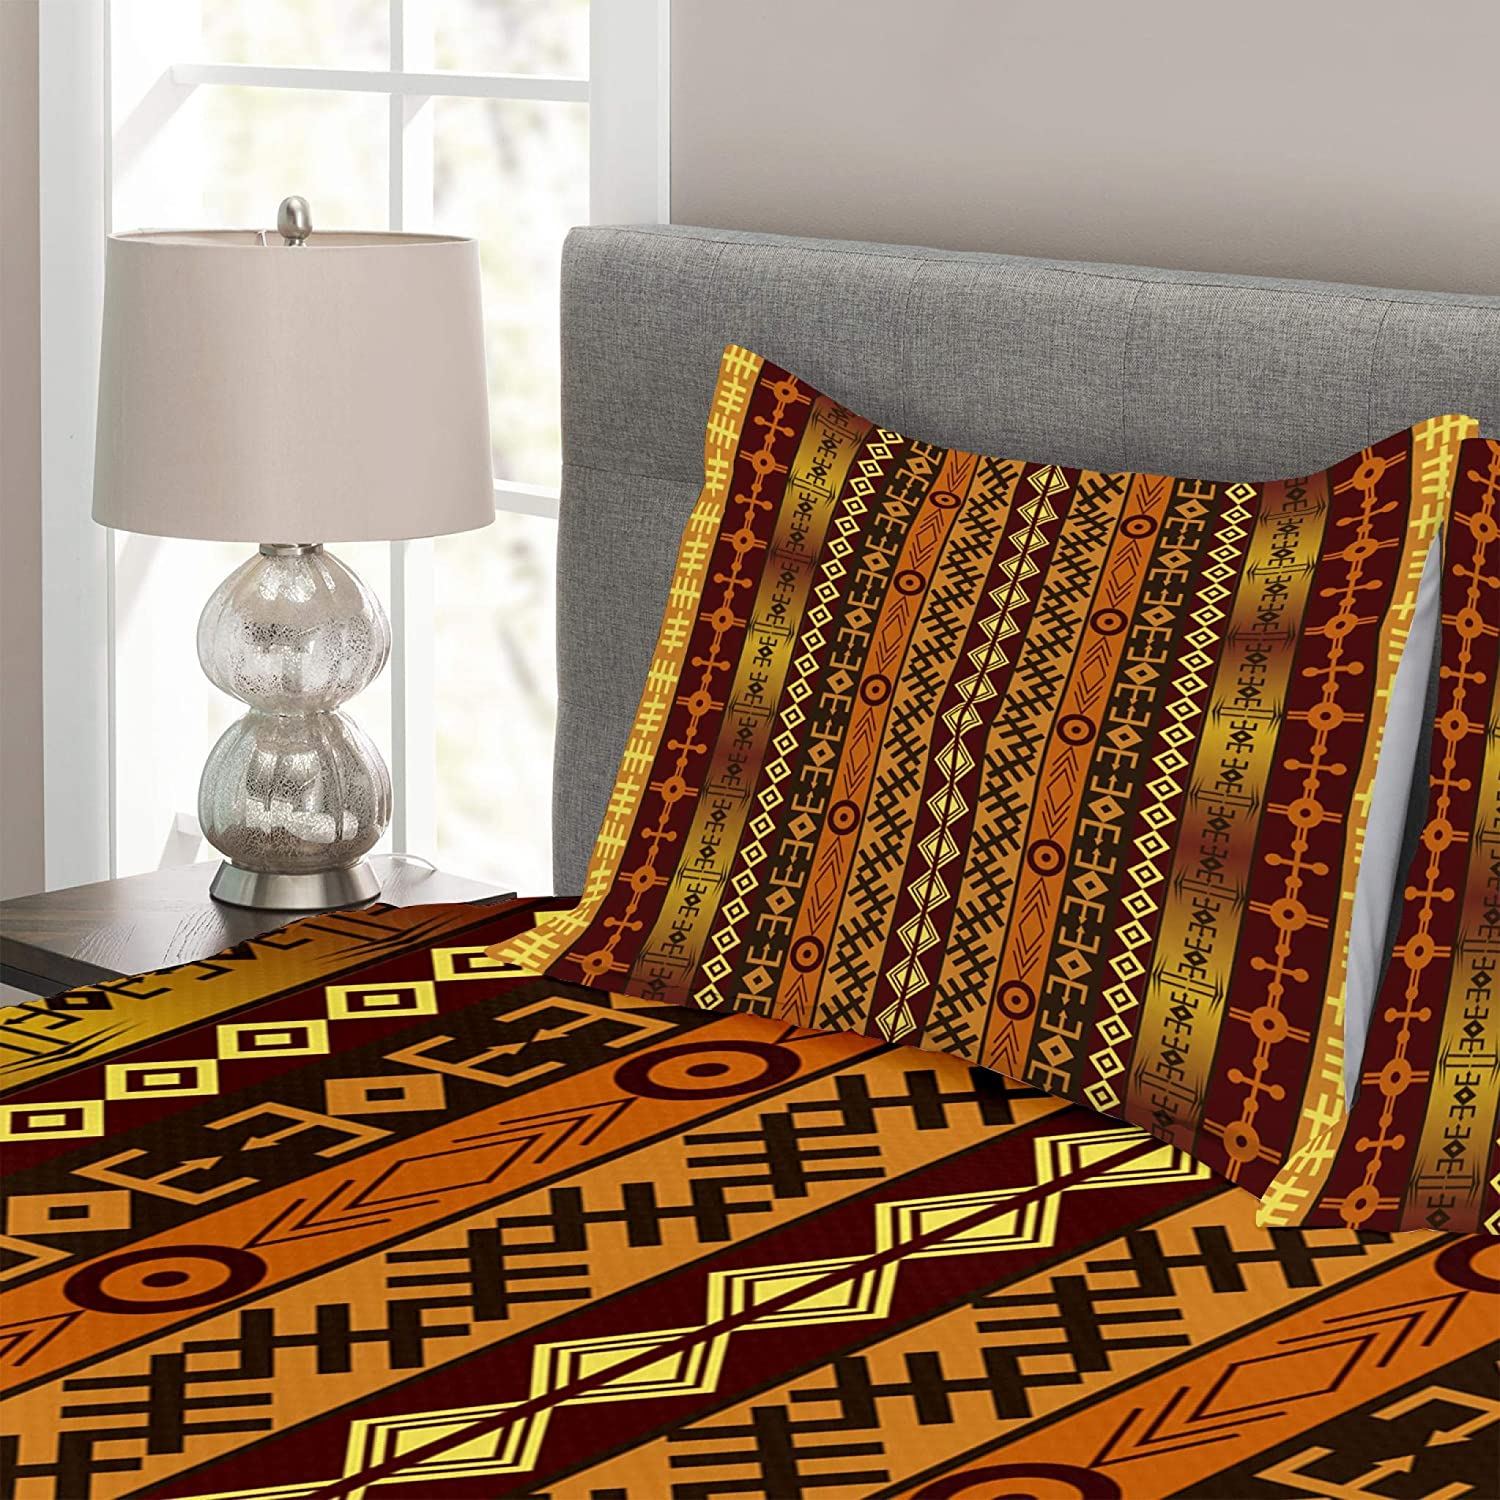 Decorative Quilted 3 Piece Bedspread Set with 2 Pillow Shams Lunarable Mexican Coverlet Set King Size Abstract Vibrant Vintage Aztec Motif Gradient Blurred Lines Ecuador Crafts Image Multicolor bed/_20618/_king